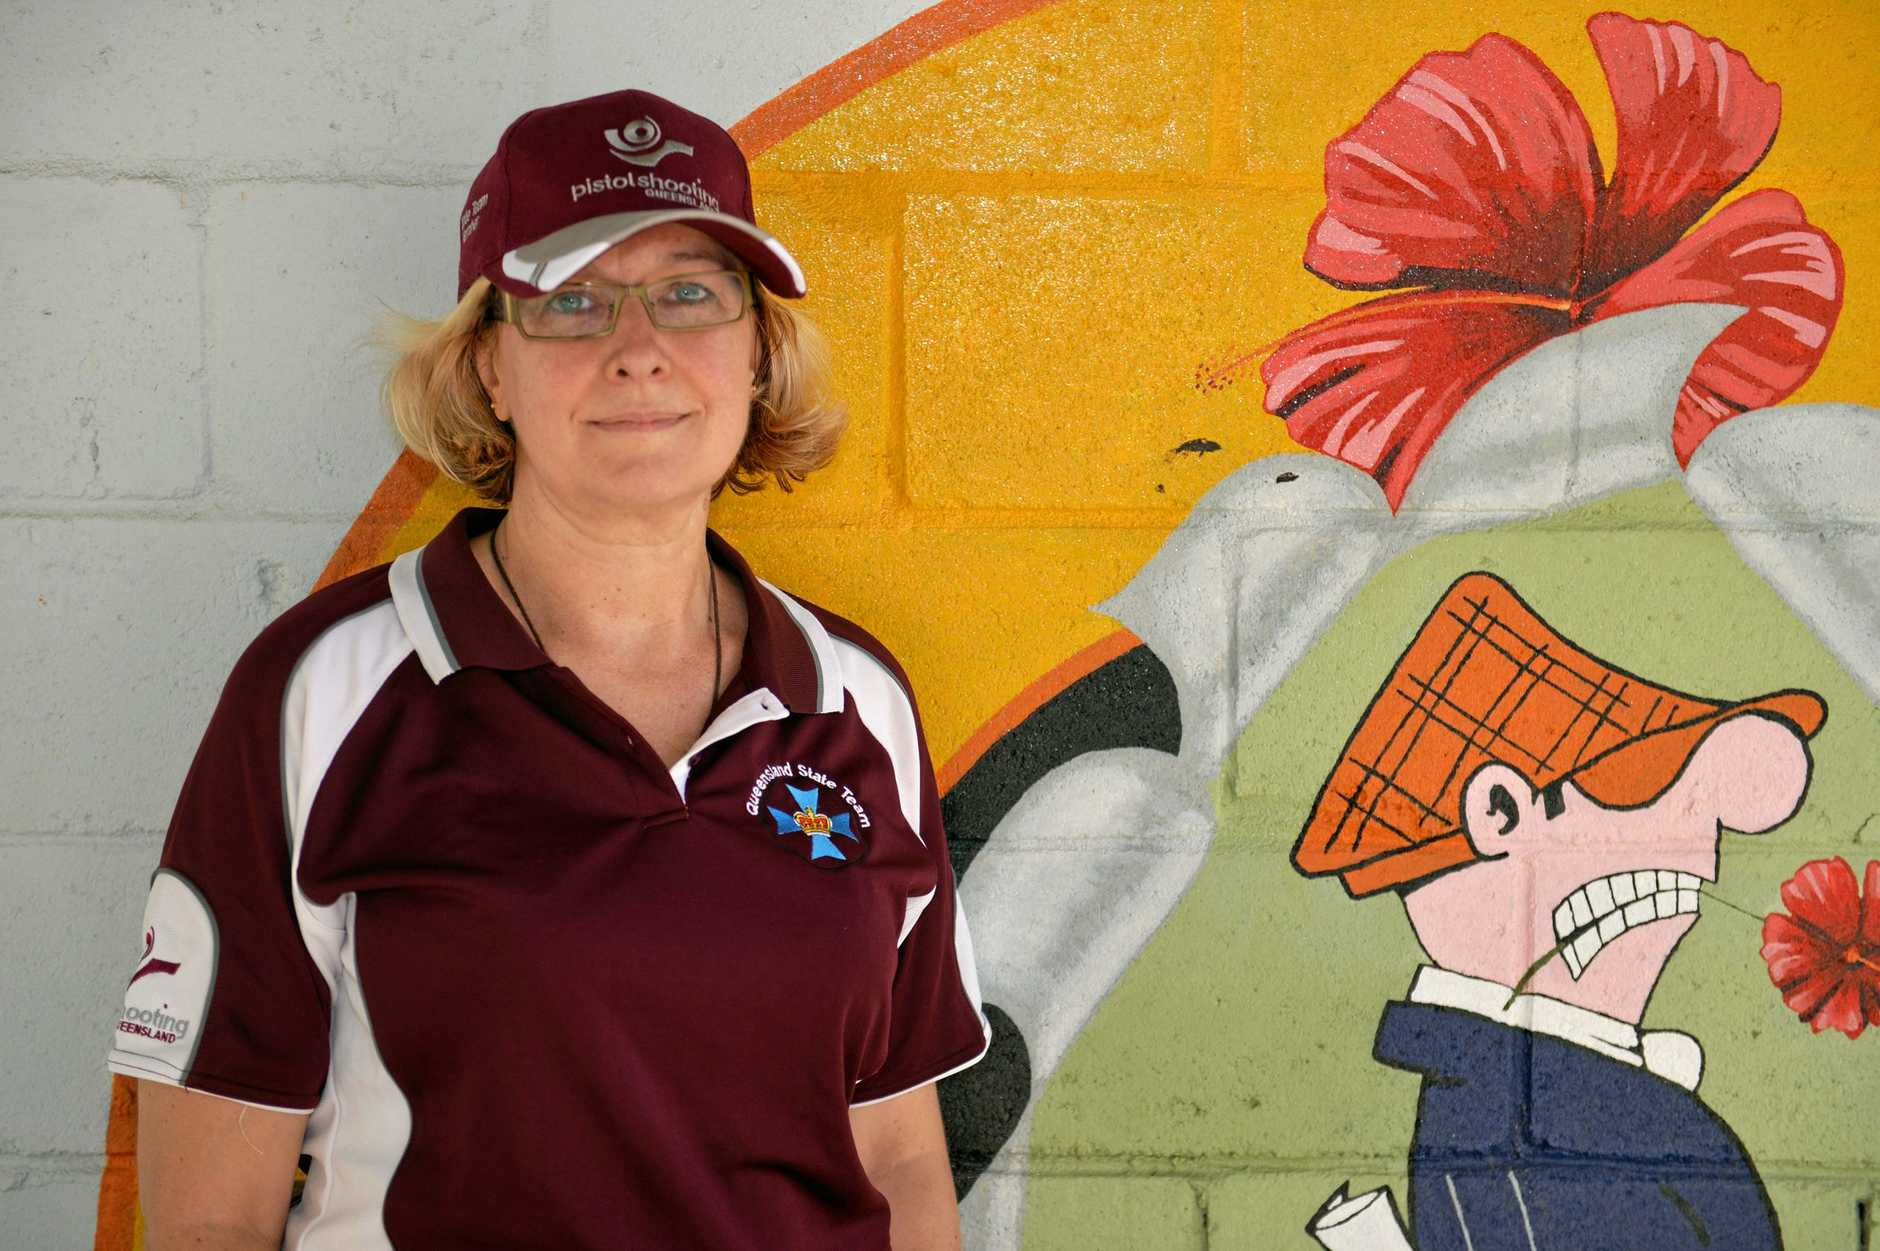 Mackay accountant, Lisa Laffy was recently selected to represent Queensland at the National titles to be held in Melbourne later in the year for the the .22 sports pistol match.